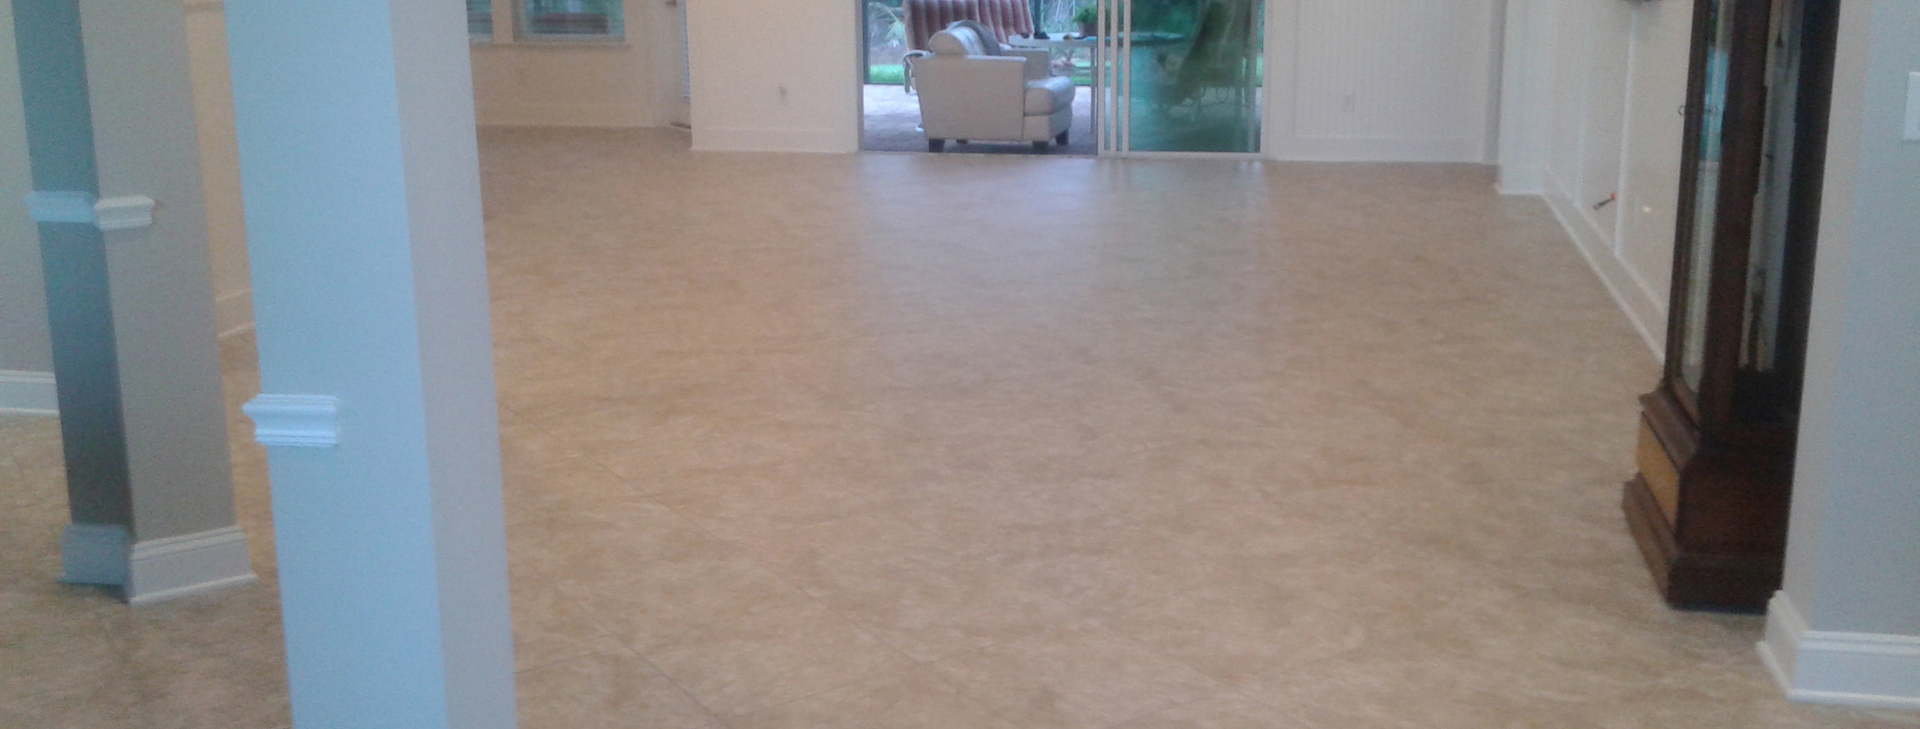 Tile grout cleaning guaranteed clean carpet cleaning tile grout cleaning save your back and your time and let us restore the beauty of your tile floors dailygadgetfo Gallery